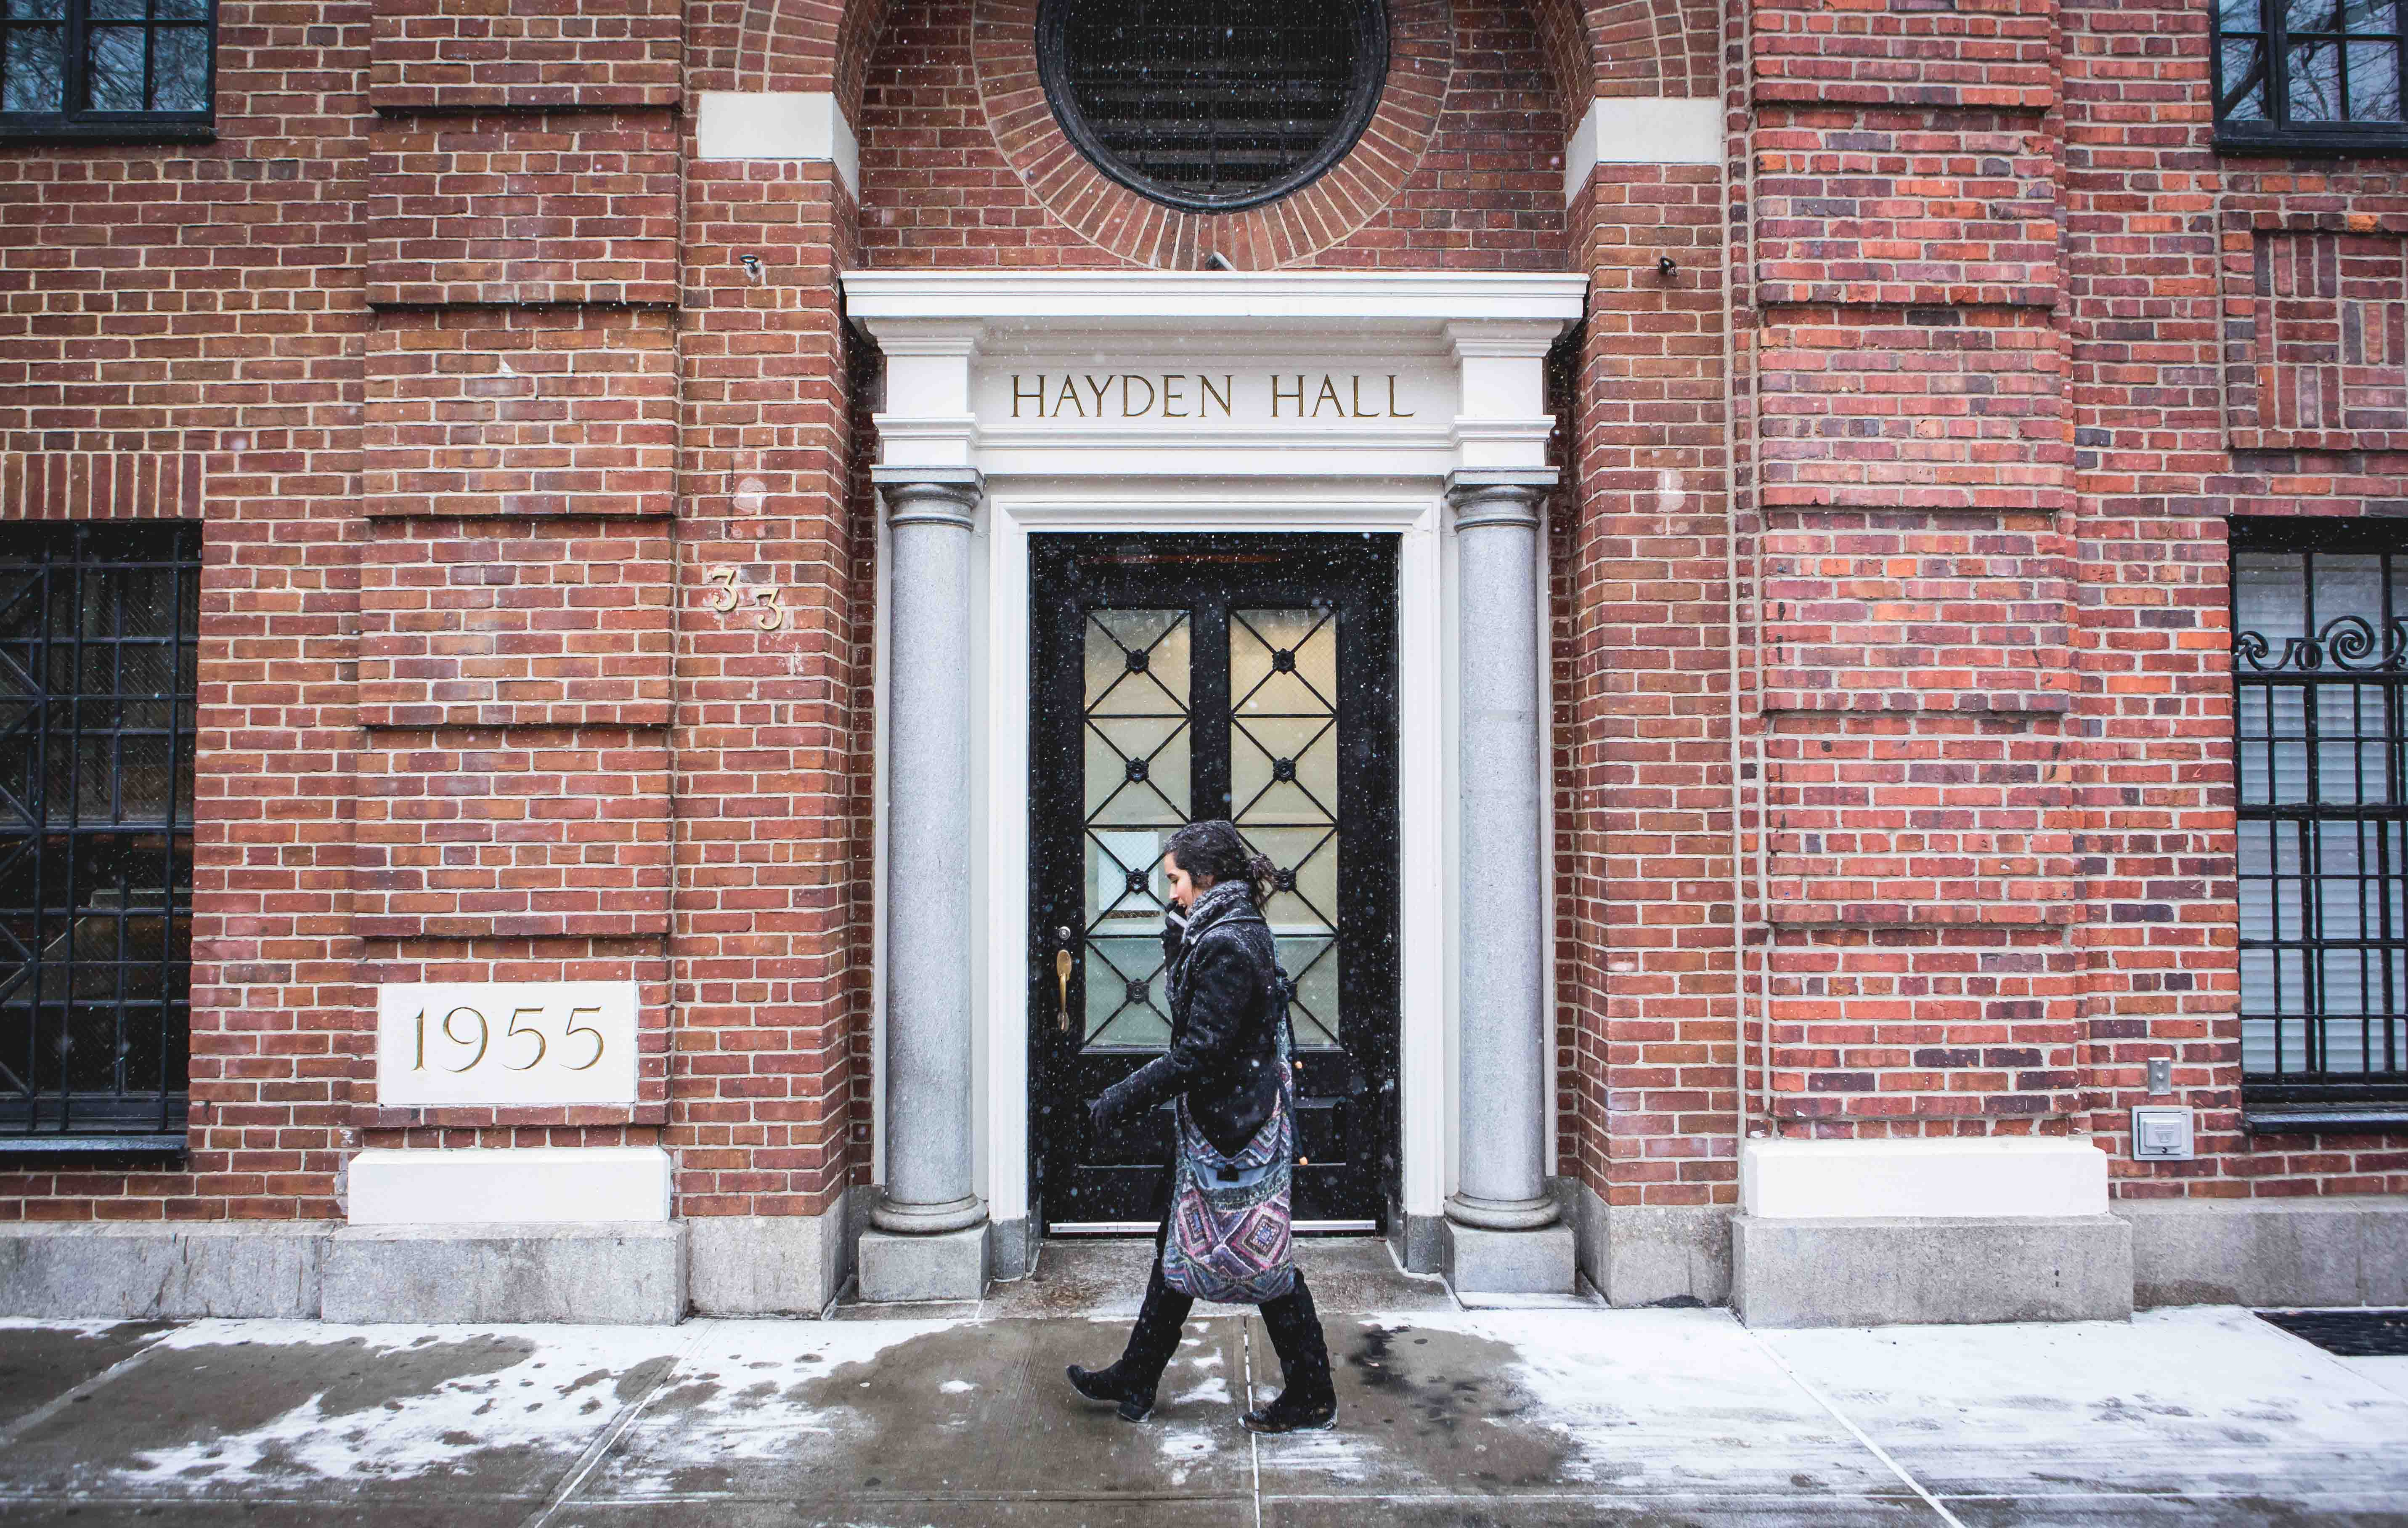 Superior Hayden Hall Is A Popular Dorm Which NYU Students Find Hard To Successfully  Apply To.